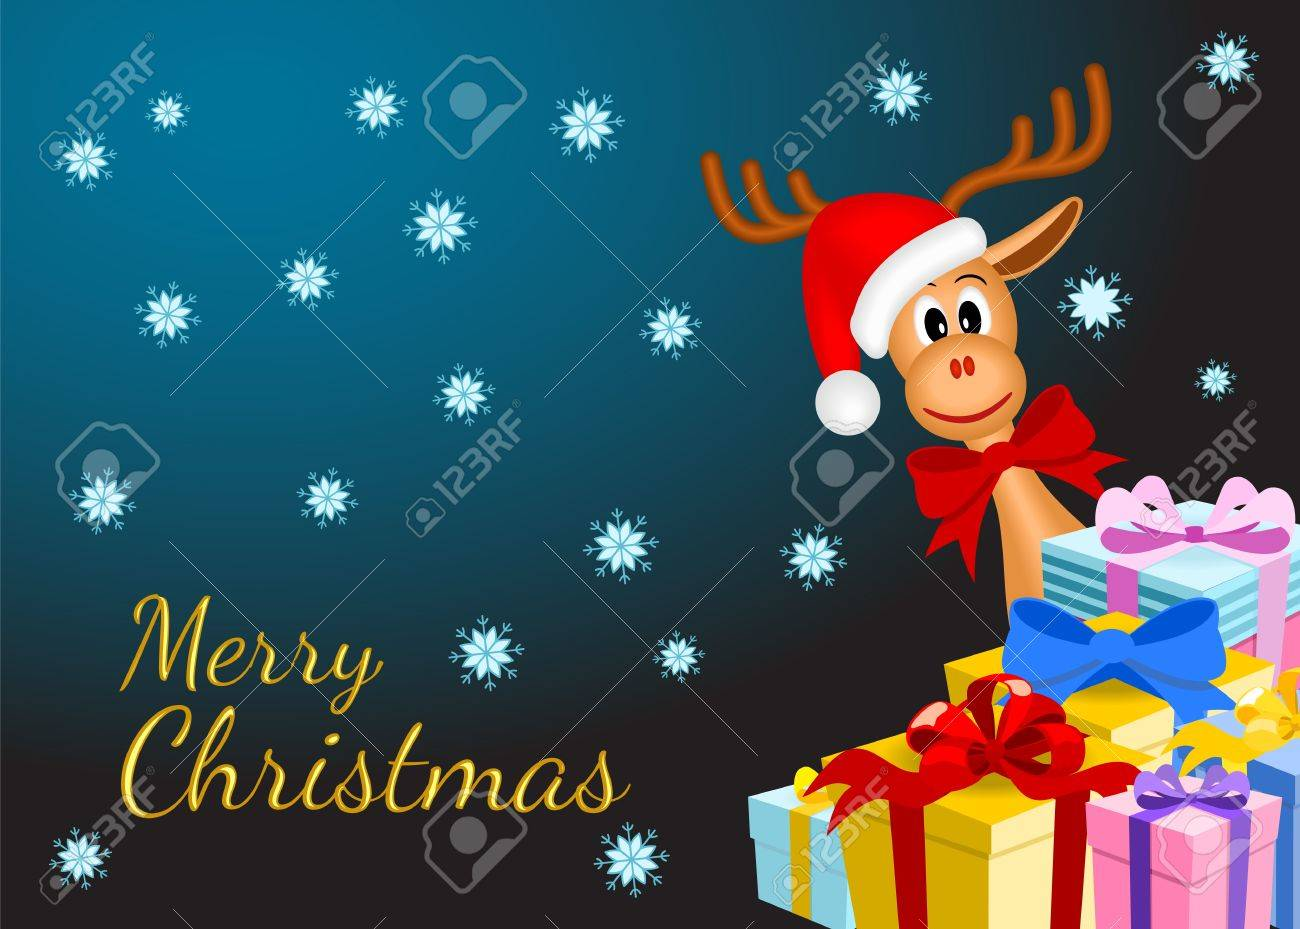 christmas background with funny reindeer and gifts on dark background with snowflakes, vector illustration, eps10 Stock Vector - 15976192